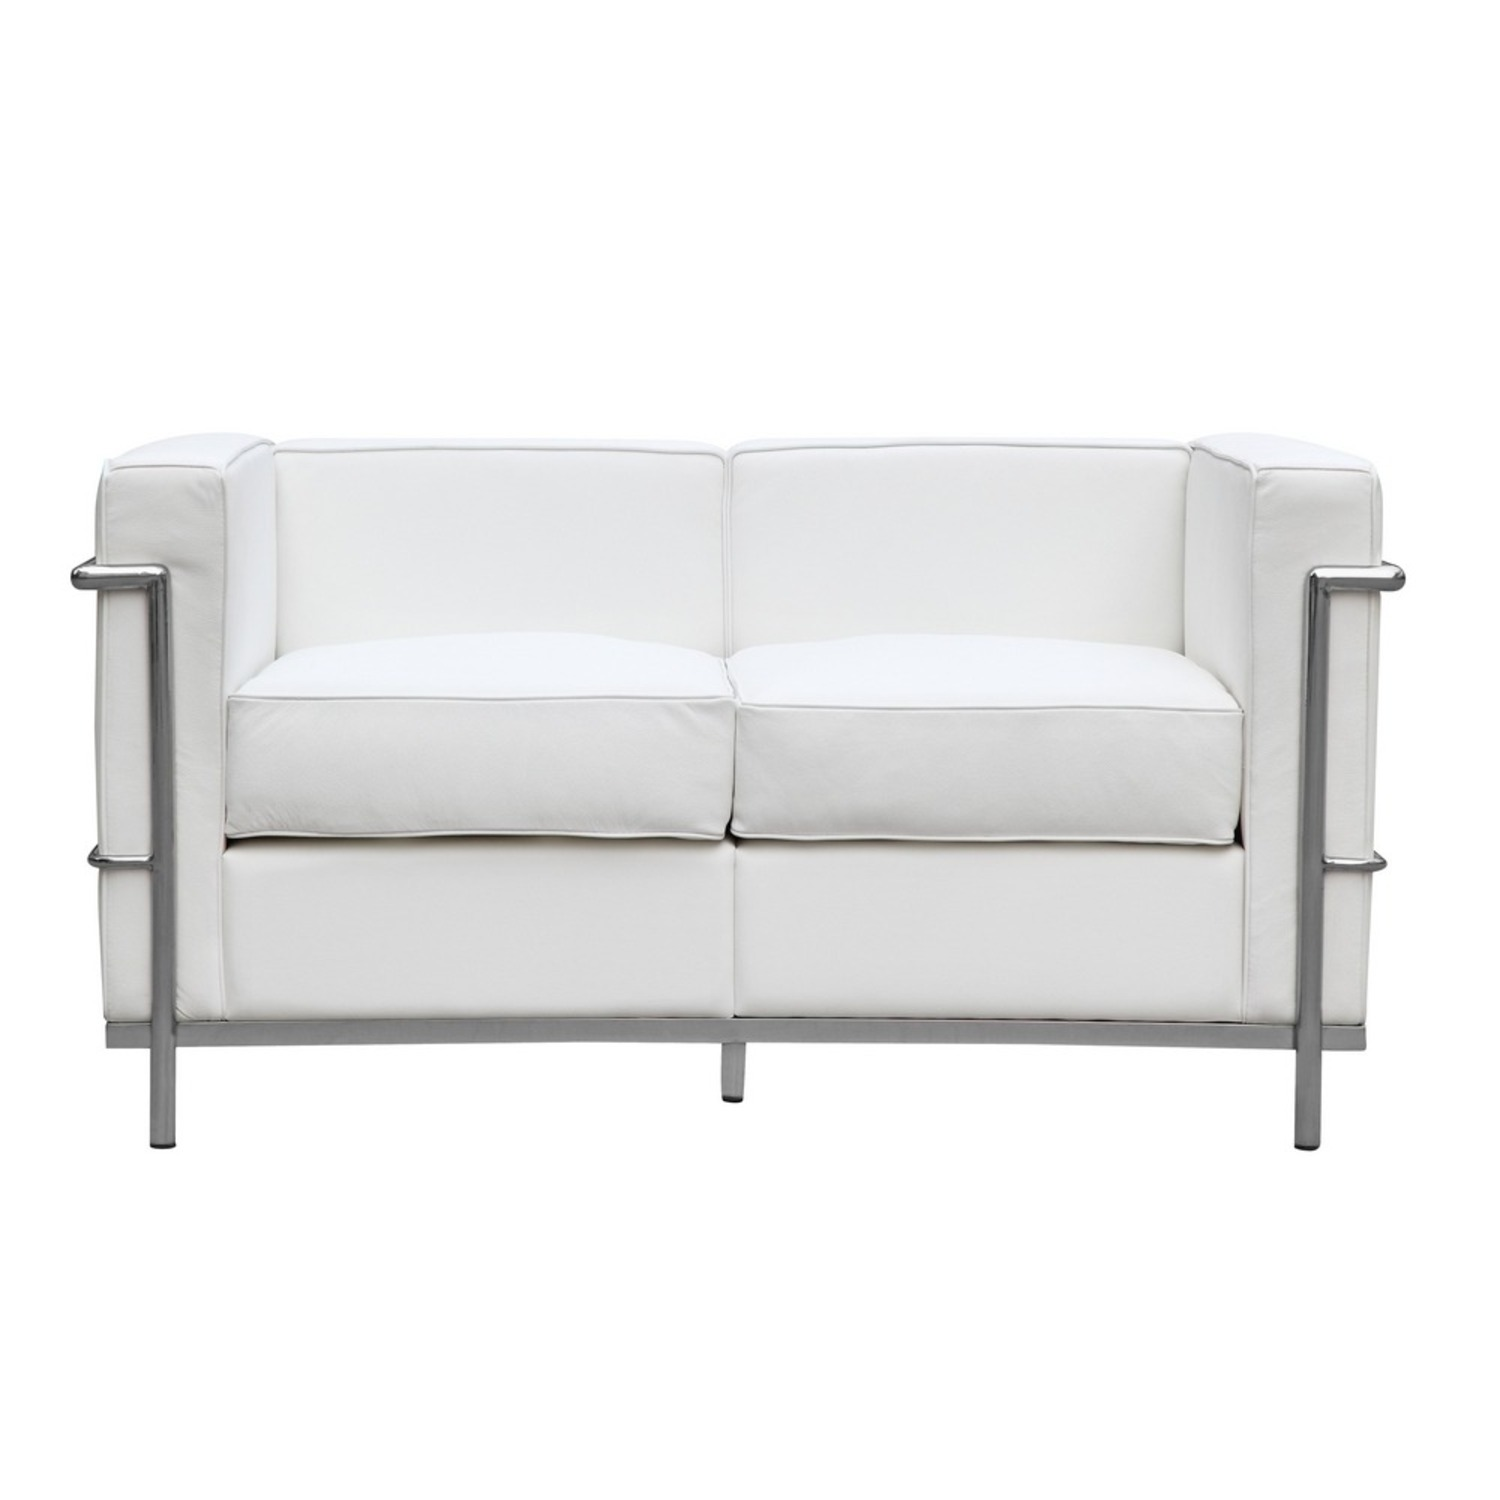 Loveseat In White Leather W/ Stainless Steel Frame - image-5